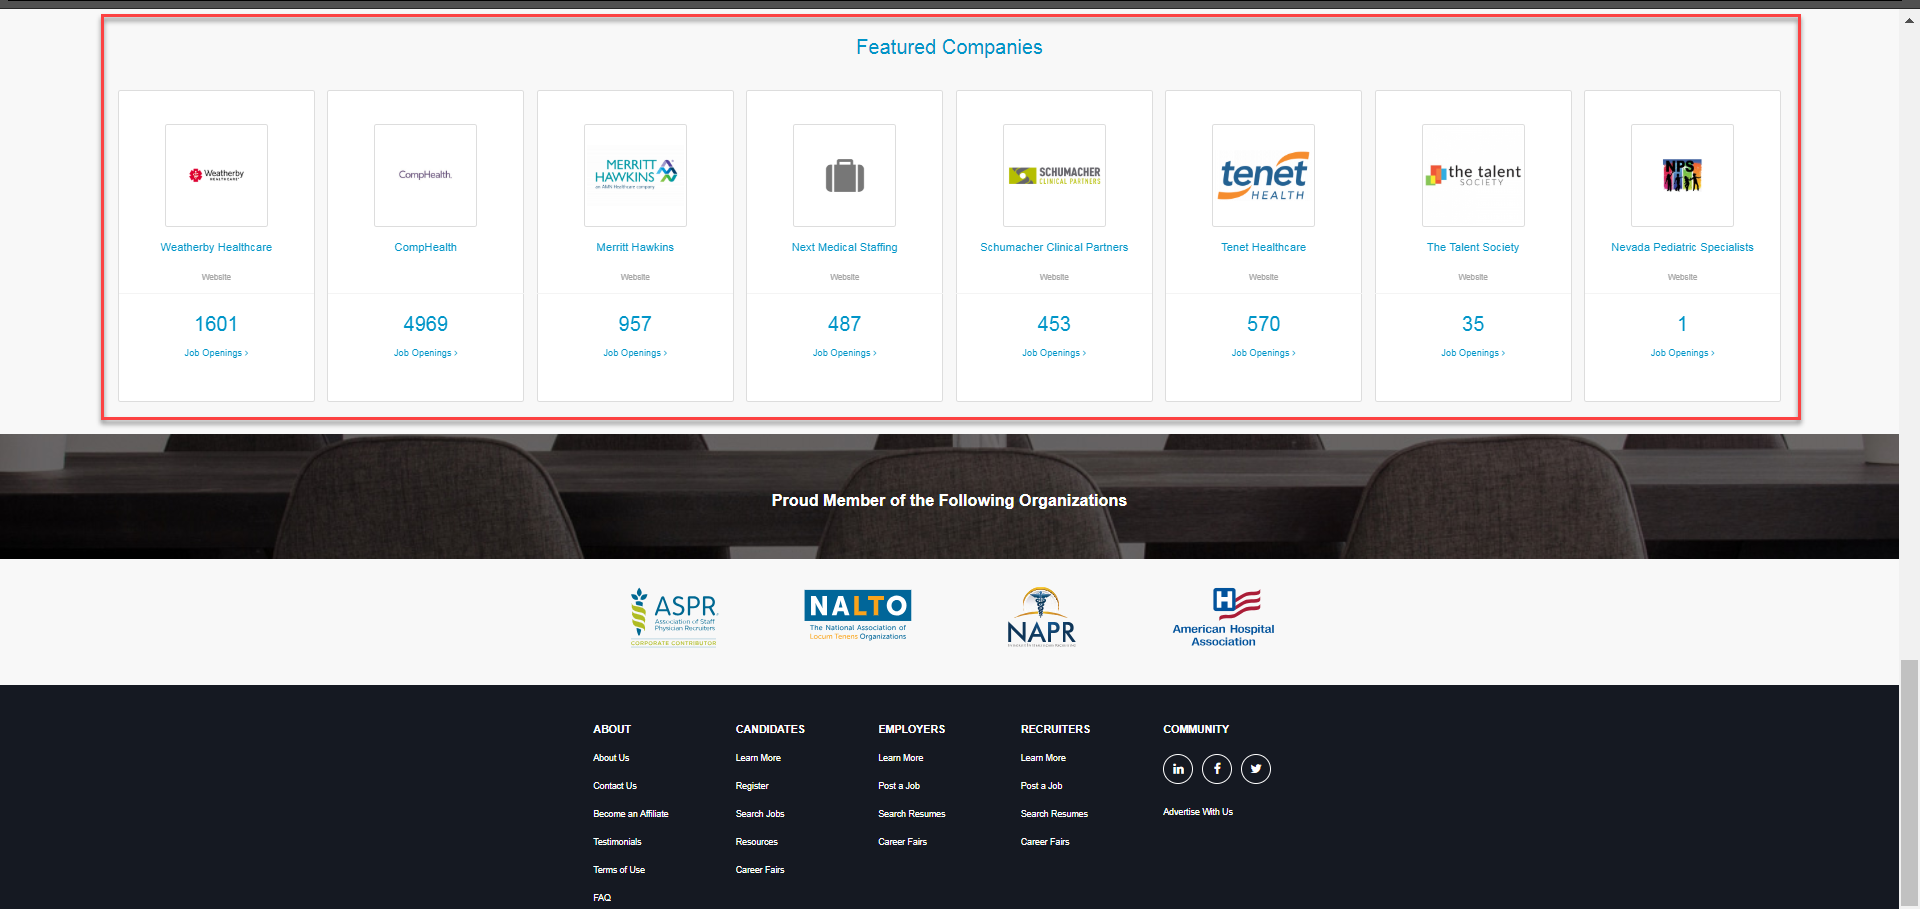 1309_Featured Company.png